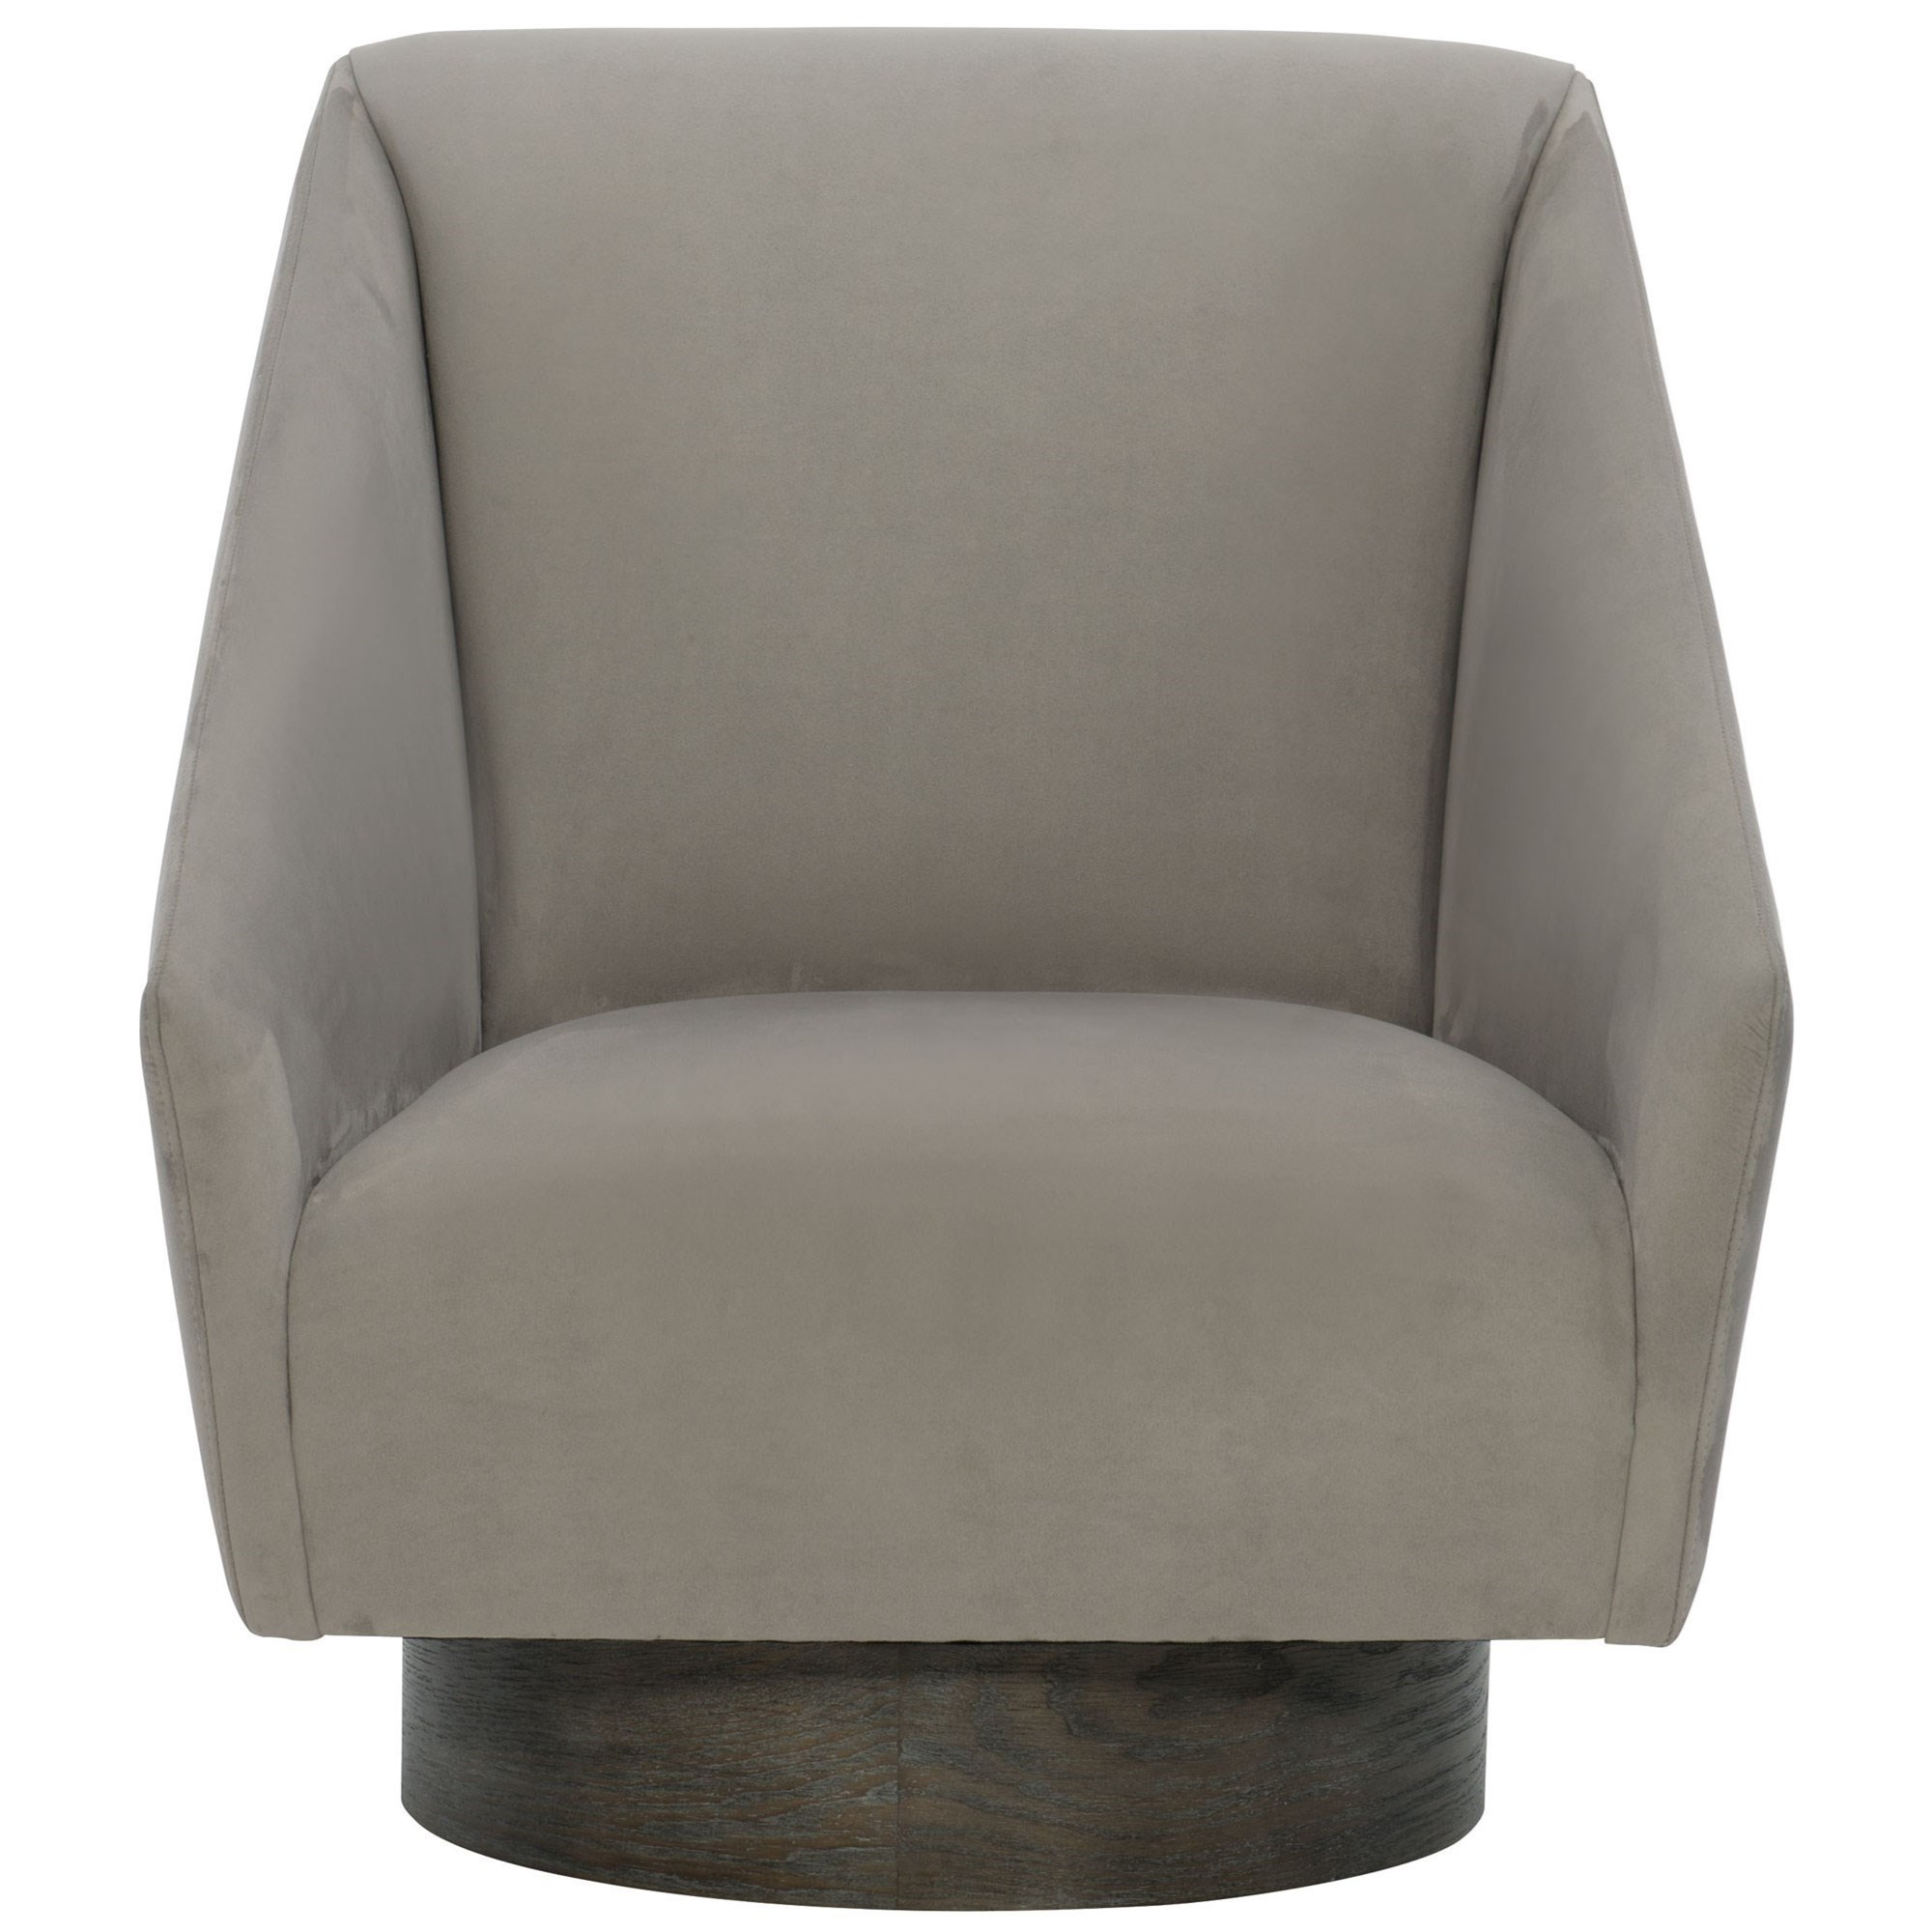 Bernhardt Interiors Milano Contemporary Upholstered Swivel Chair With Exposed Base Howell Furniture Upholstered Chairs